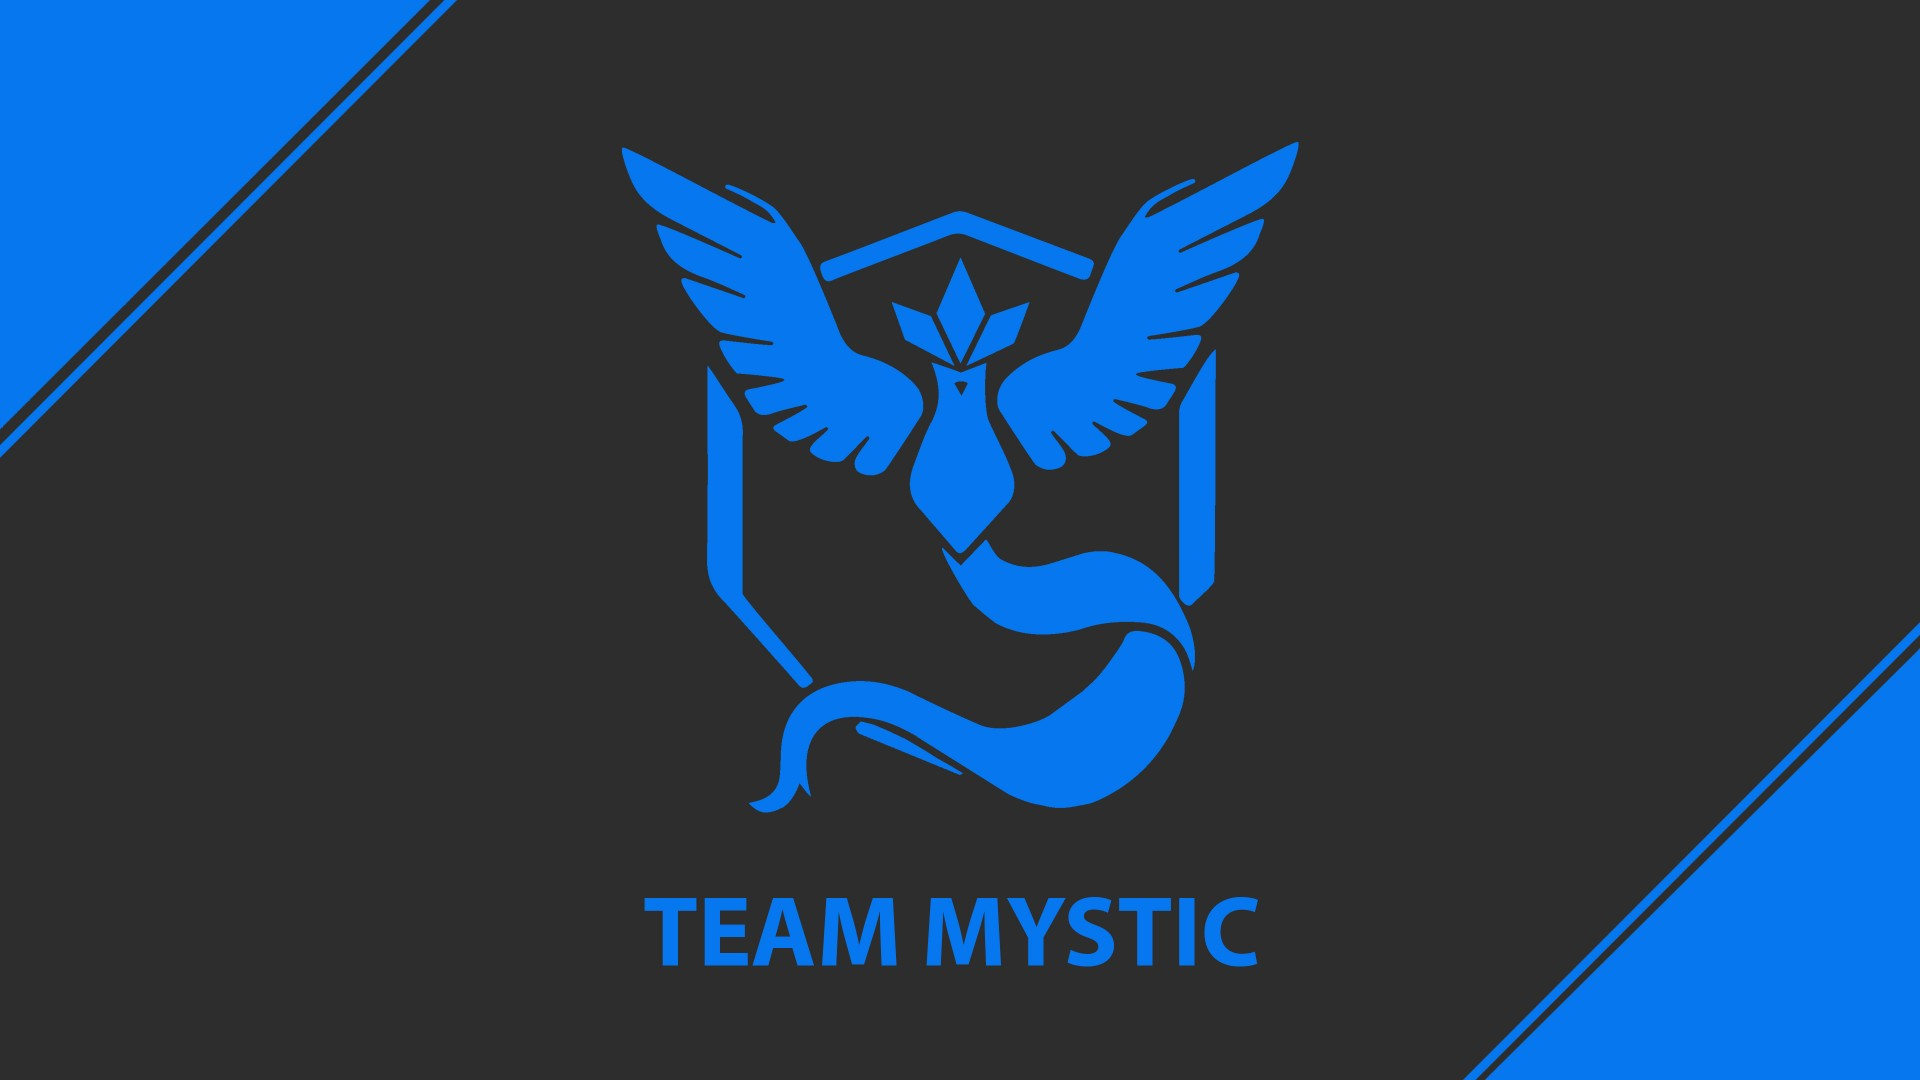 Download Wallpaper 3d Android Pokemon Go Team Mystic Team Blue 4k Wallpapers Hd